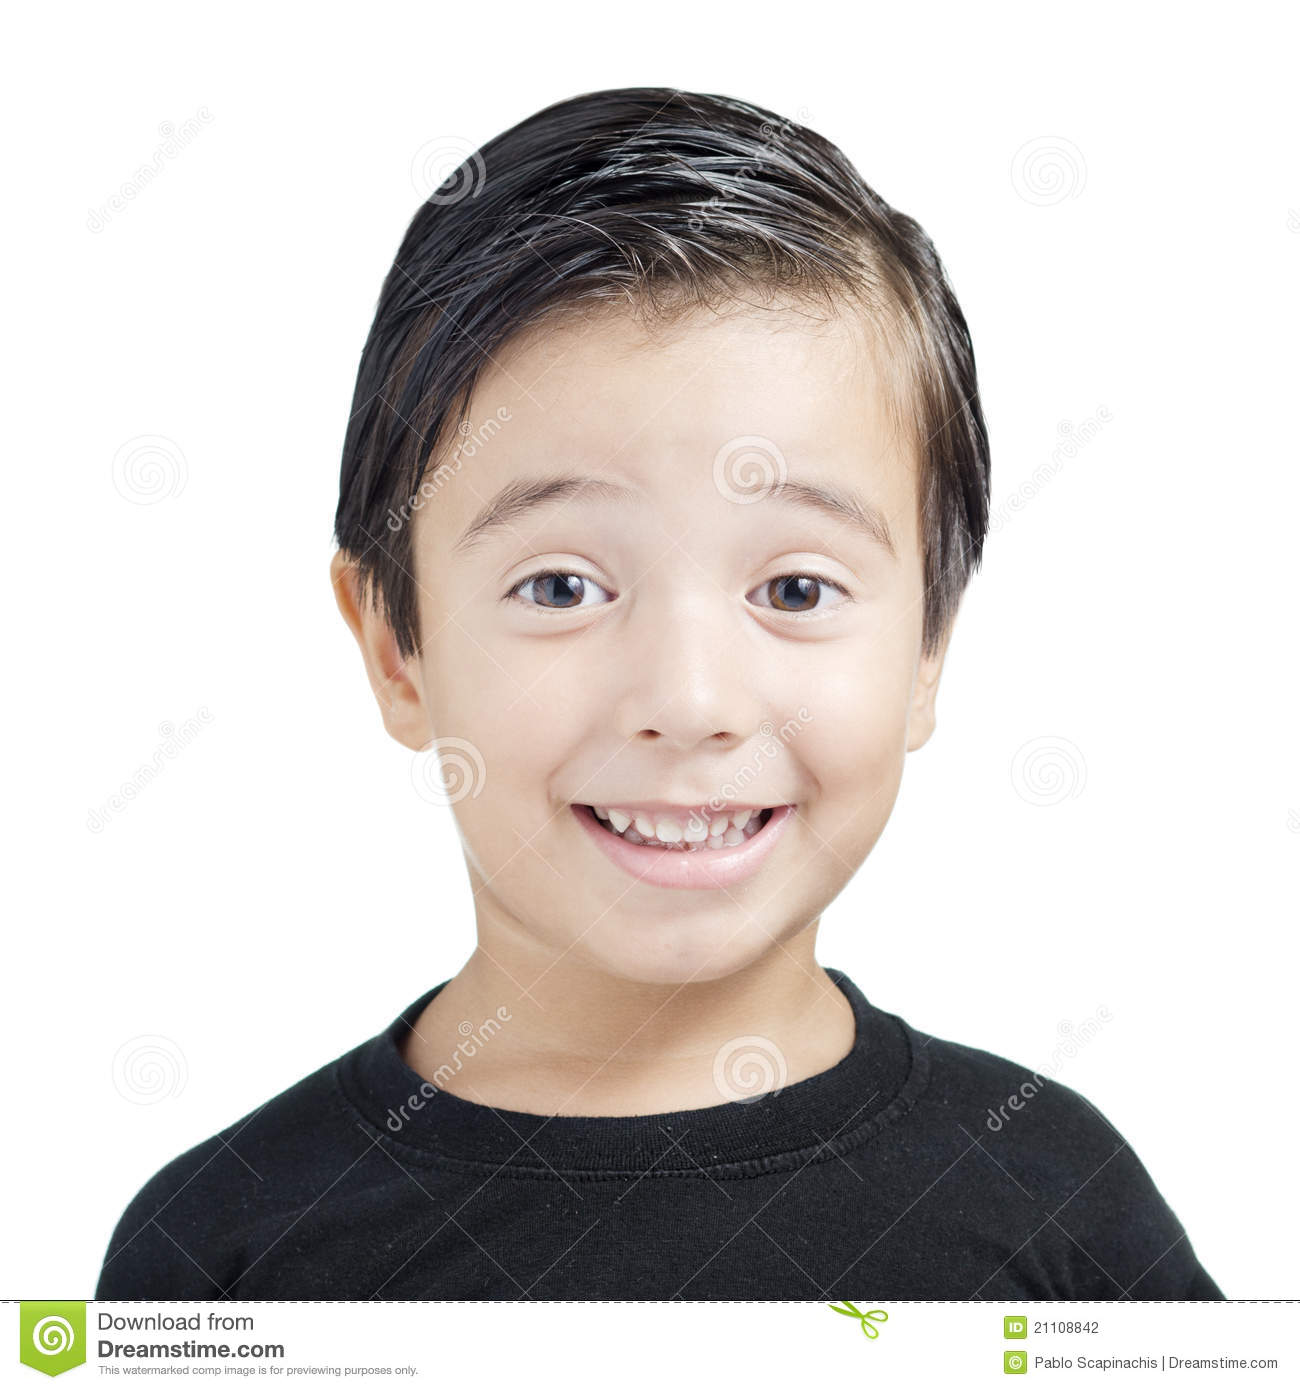 Portrait of kid smiling